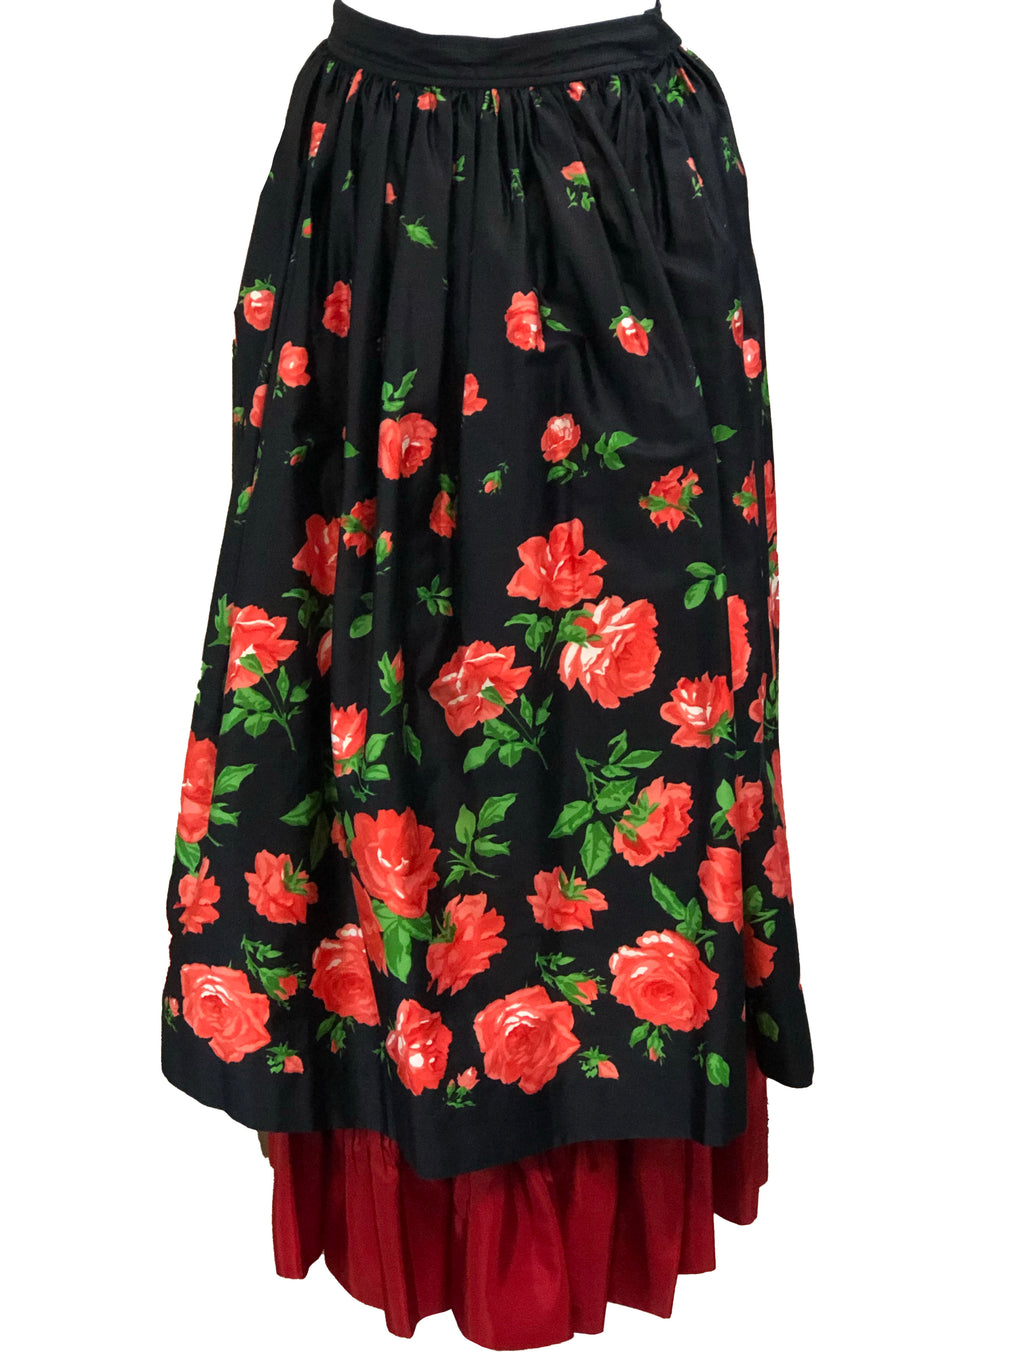 Saint Laurent Rive Gauche Layered Peasant skirt in Black and Red Floral  FRONT 1 of 4